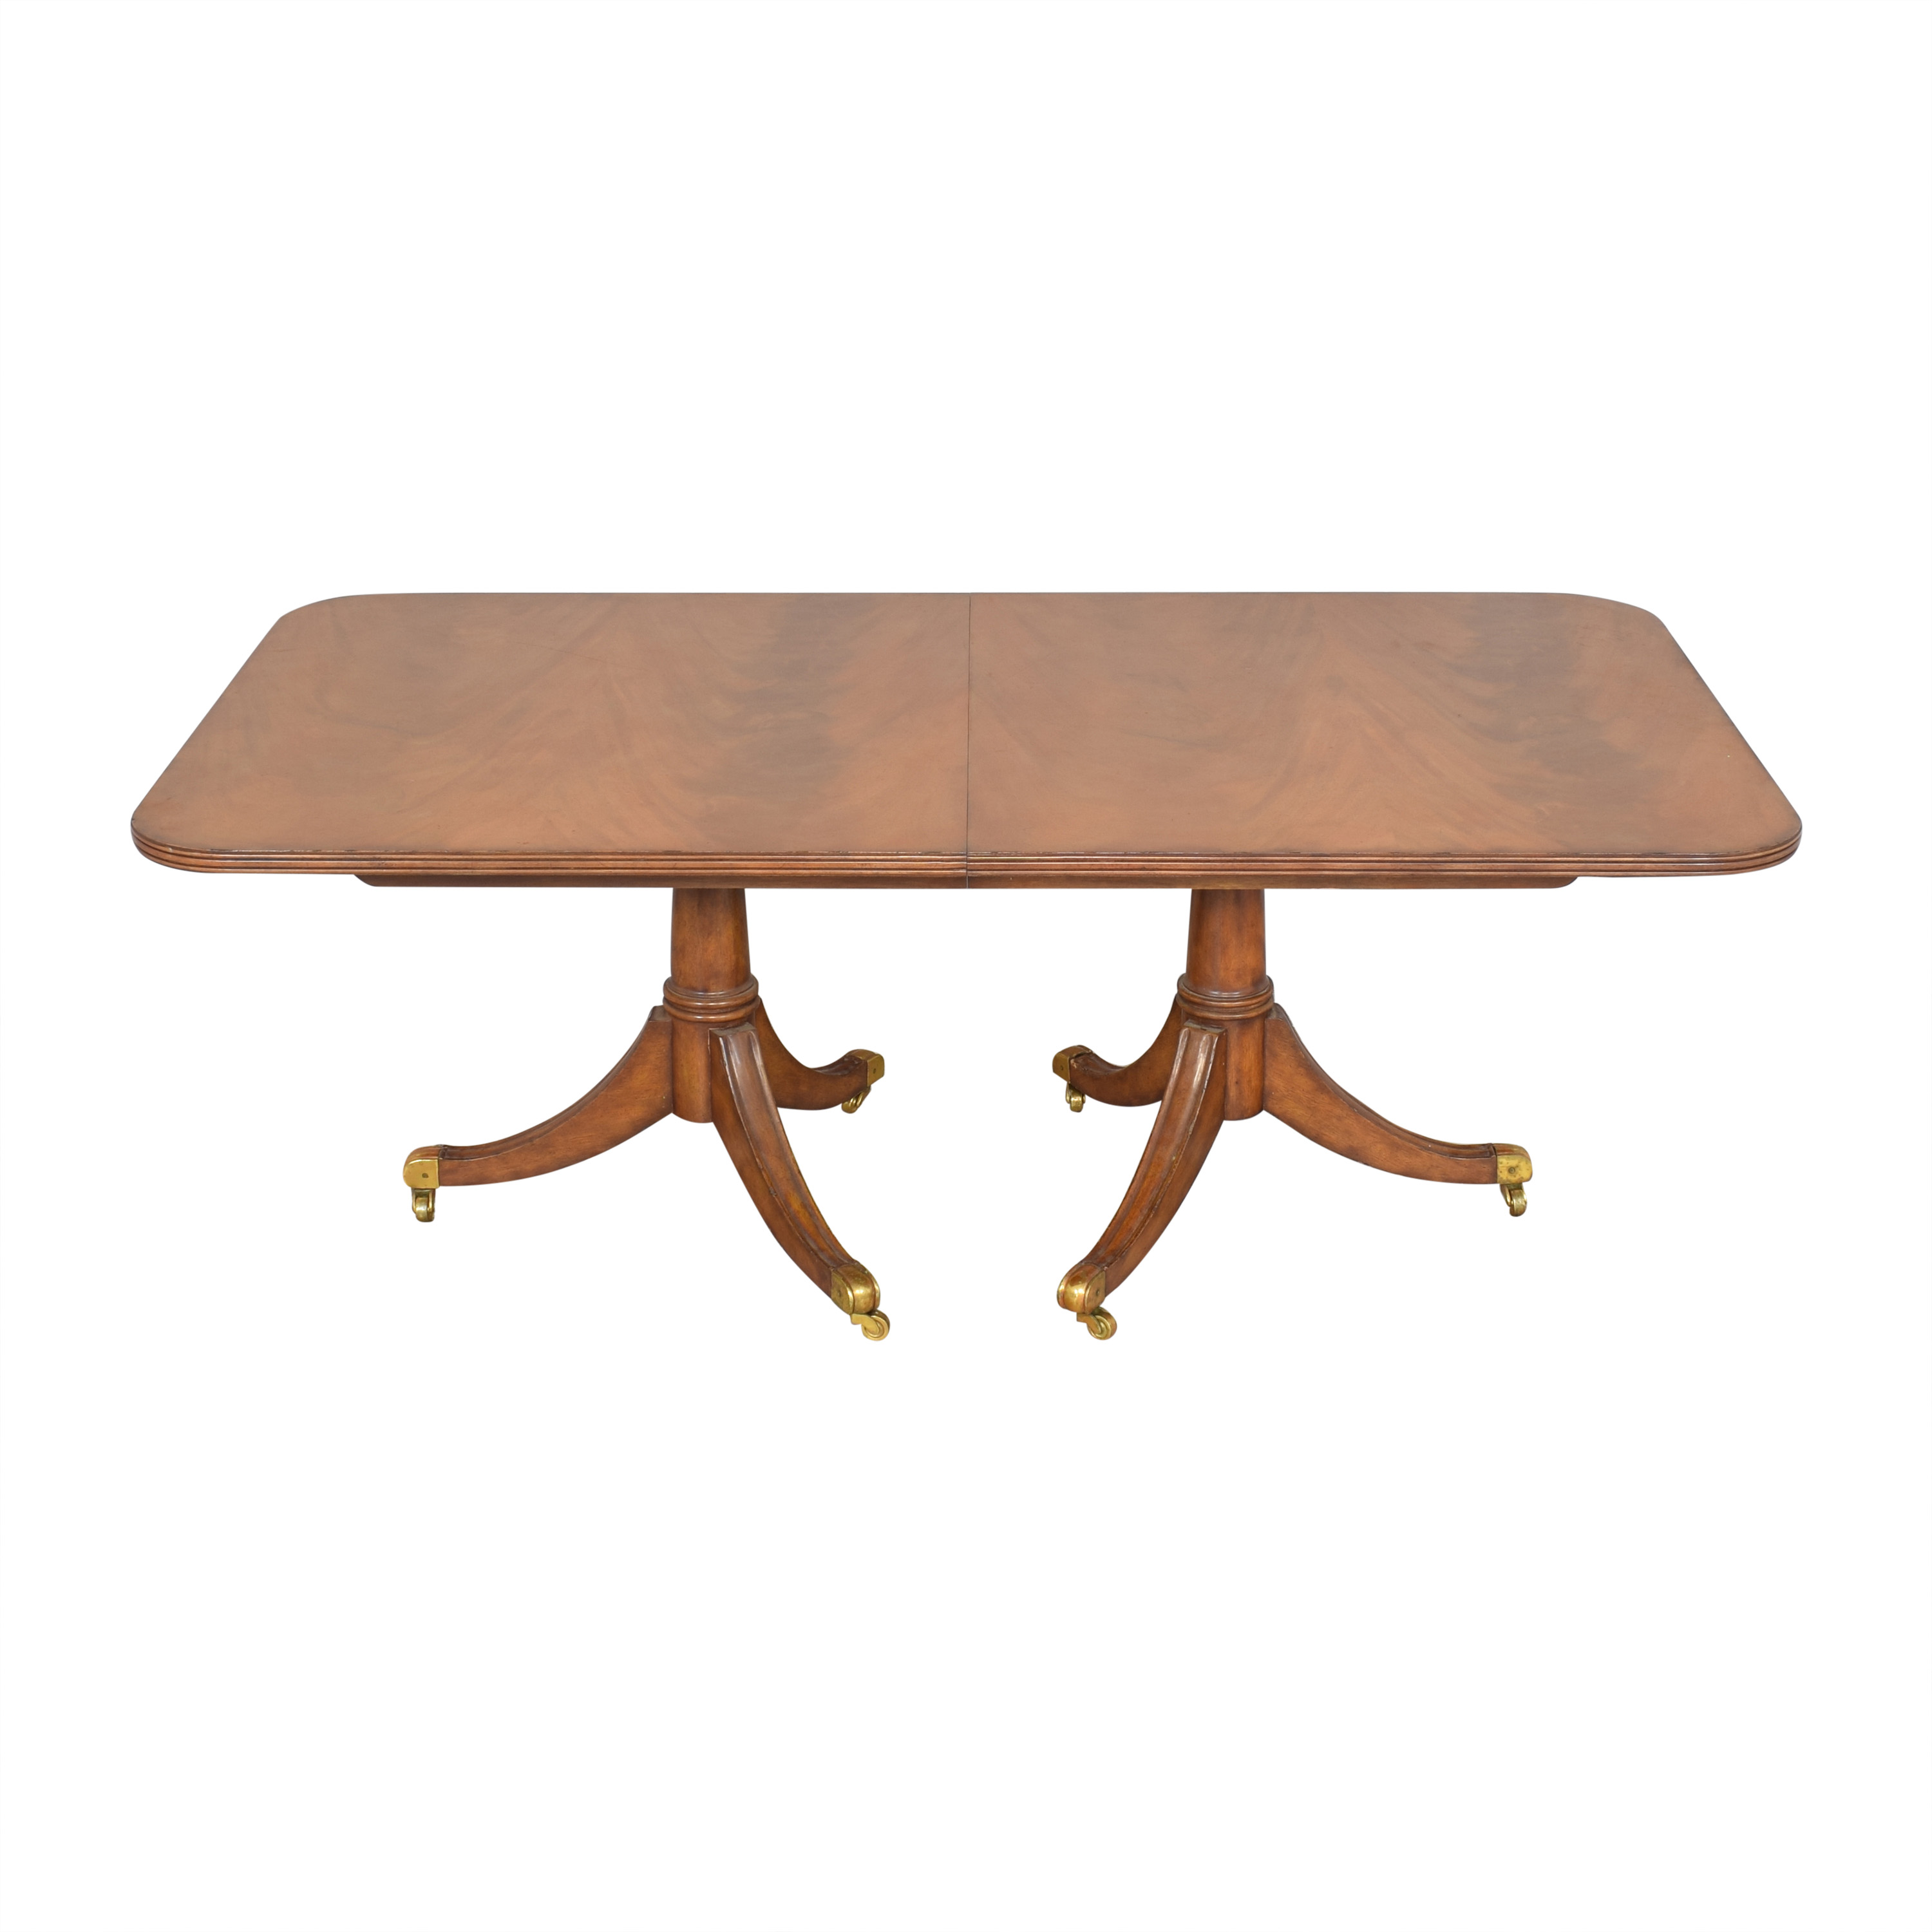 Maitland-Smith Maitland-Smith Double Pedestal Extendable Dining Table nj